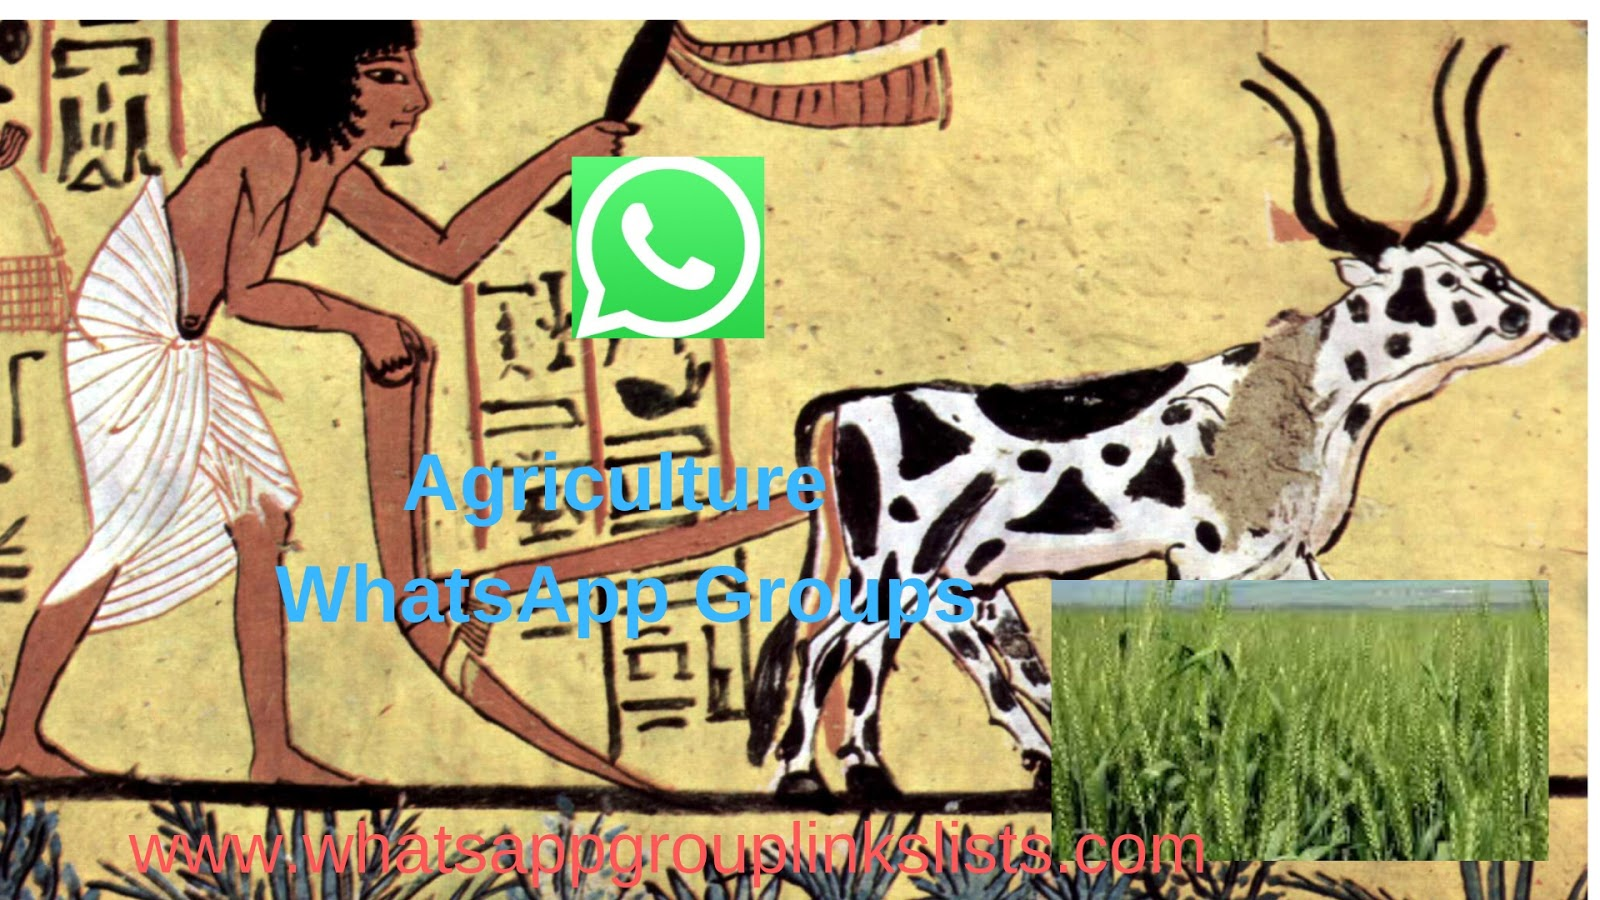 Join Agriculture WhatsApp Group Links List